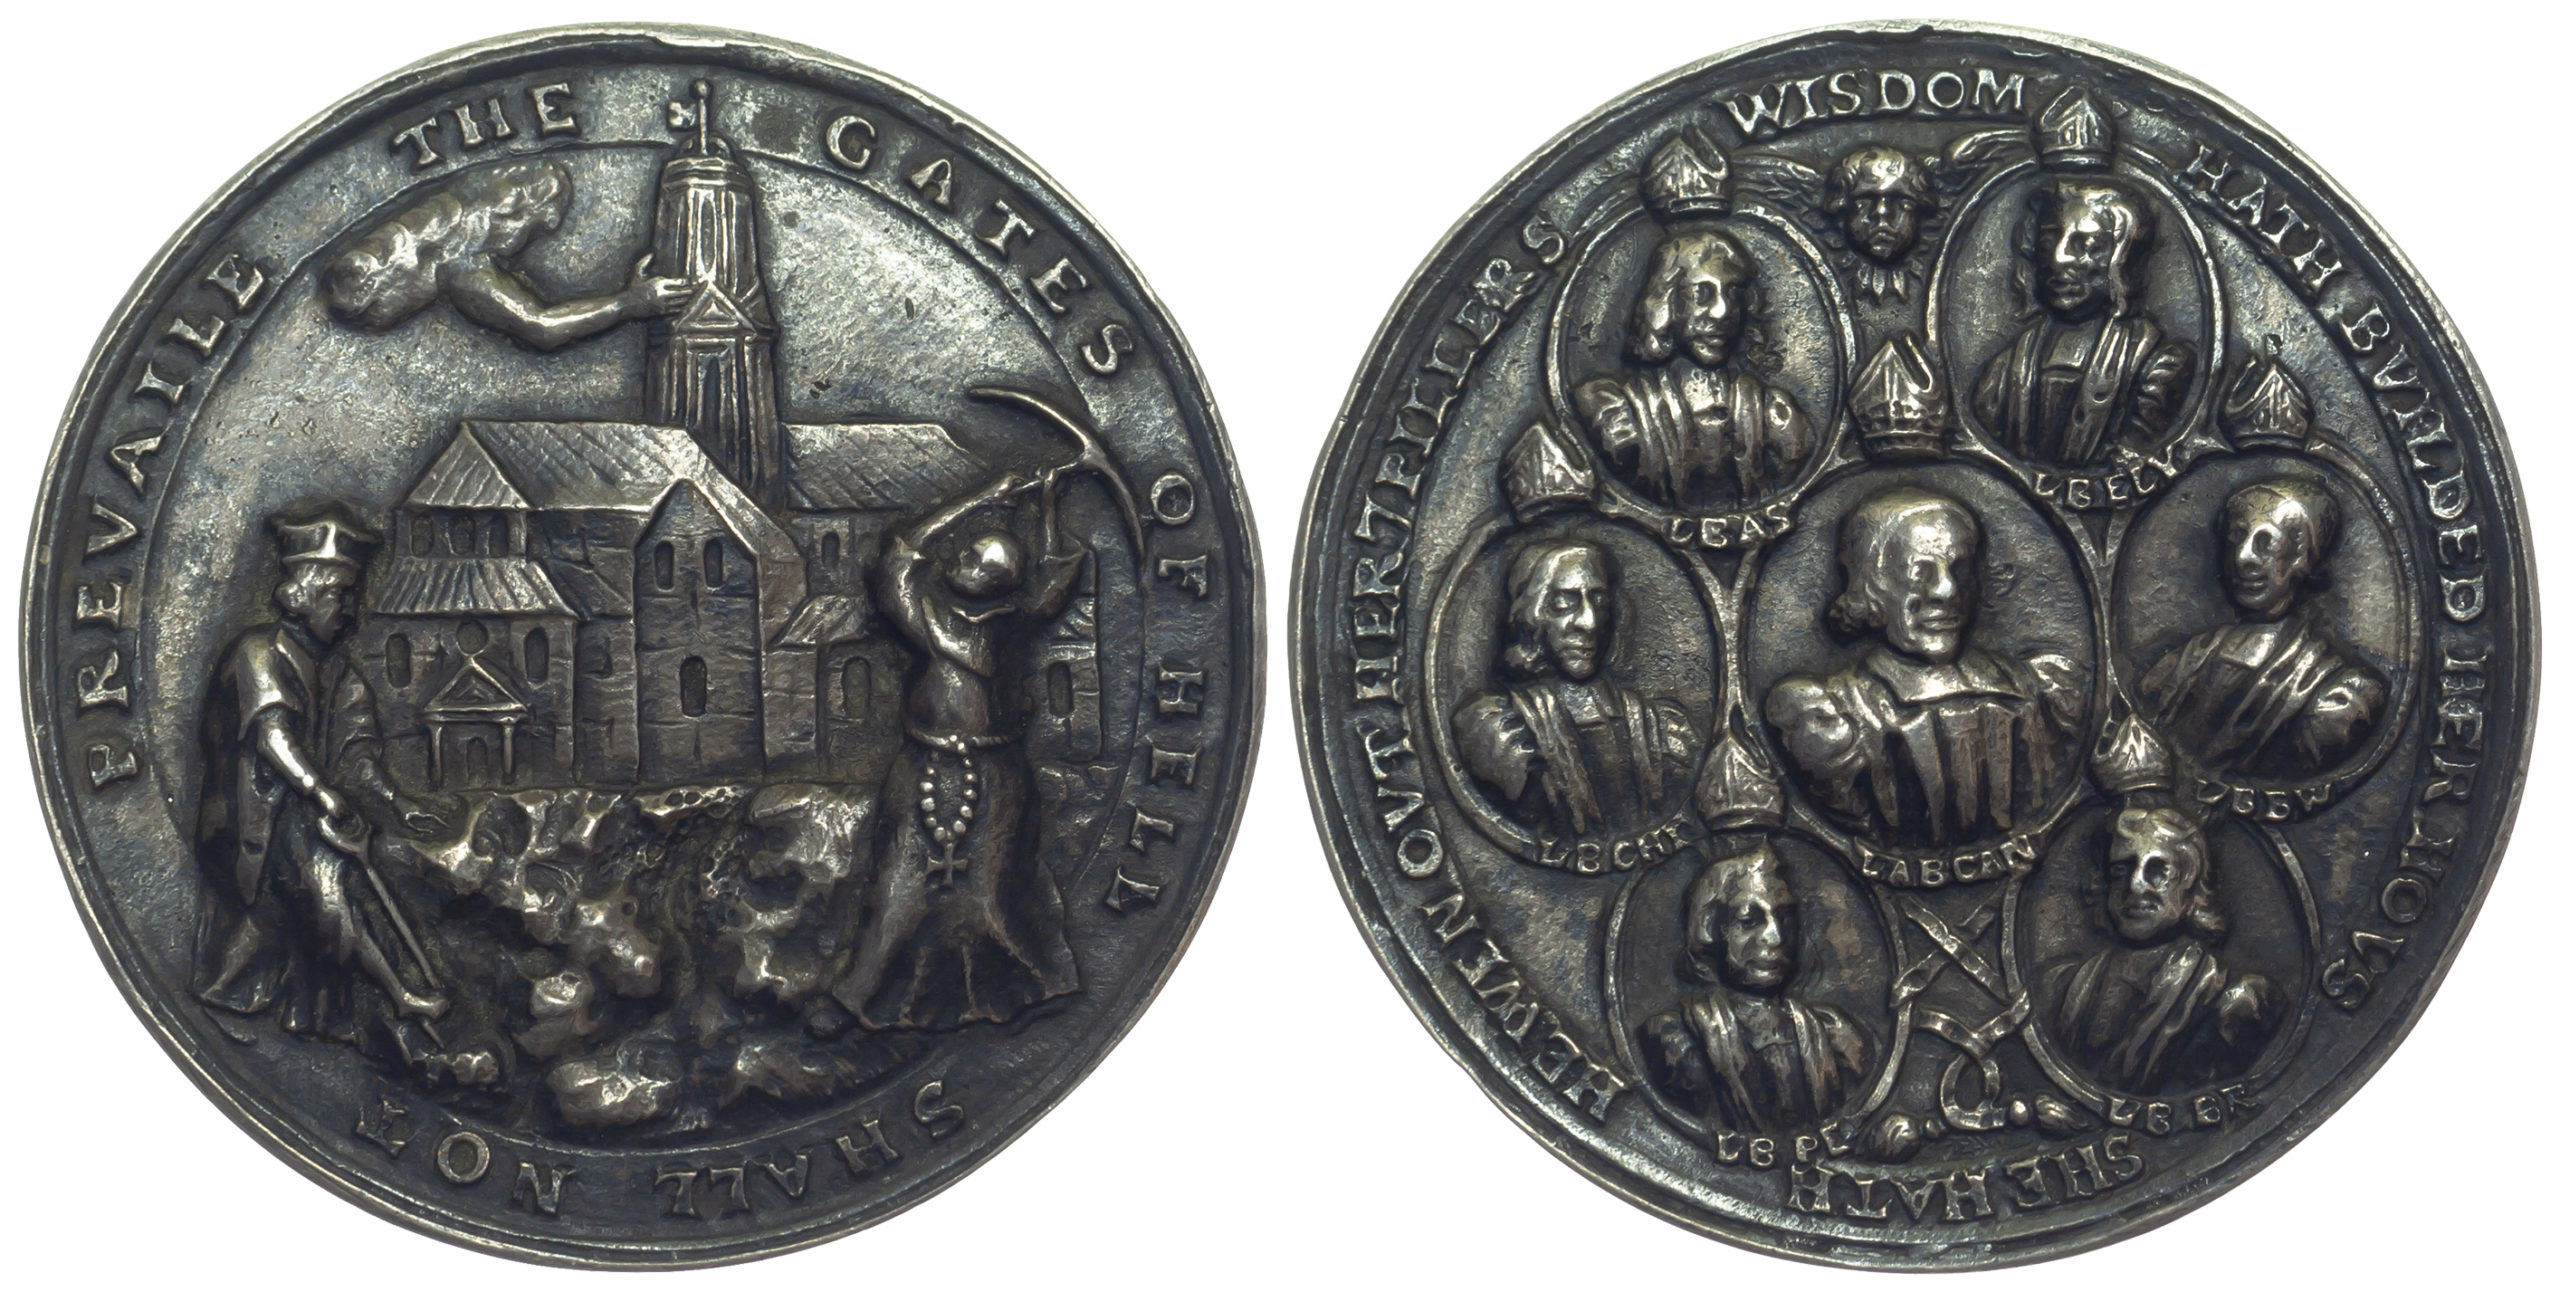 James II, Stability of Anglican Church, Silver Medal, 1688